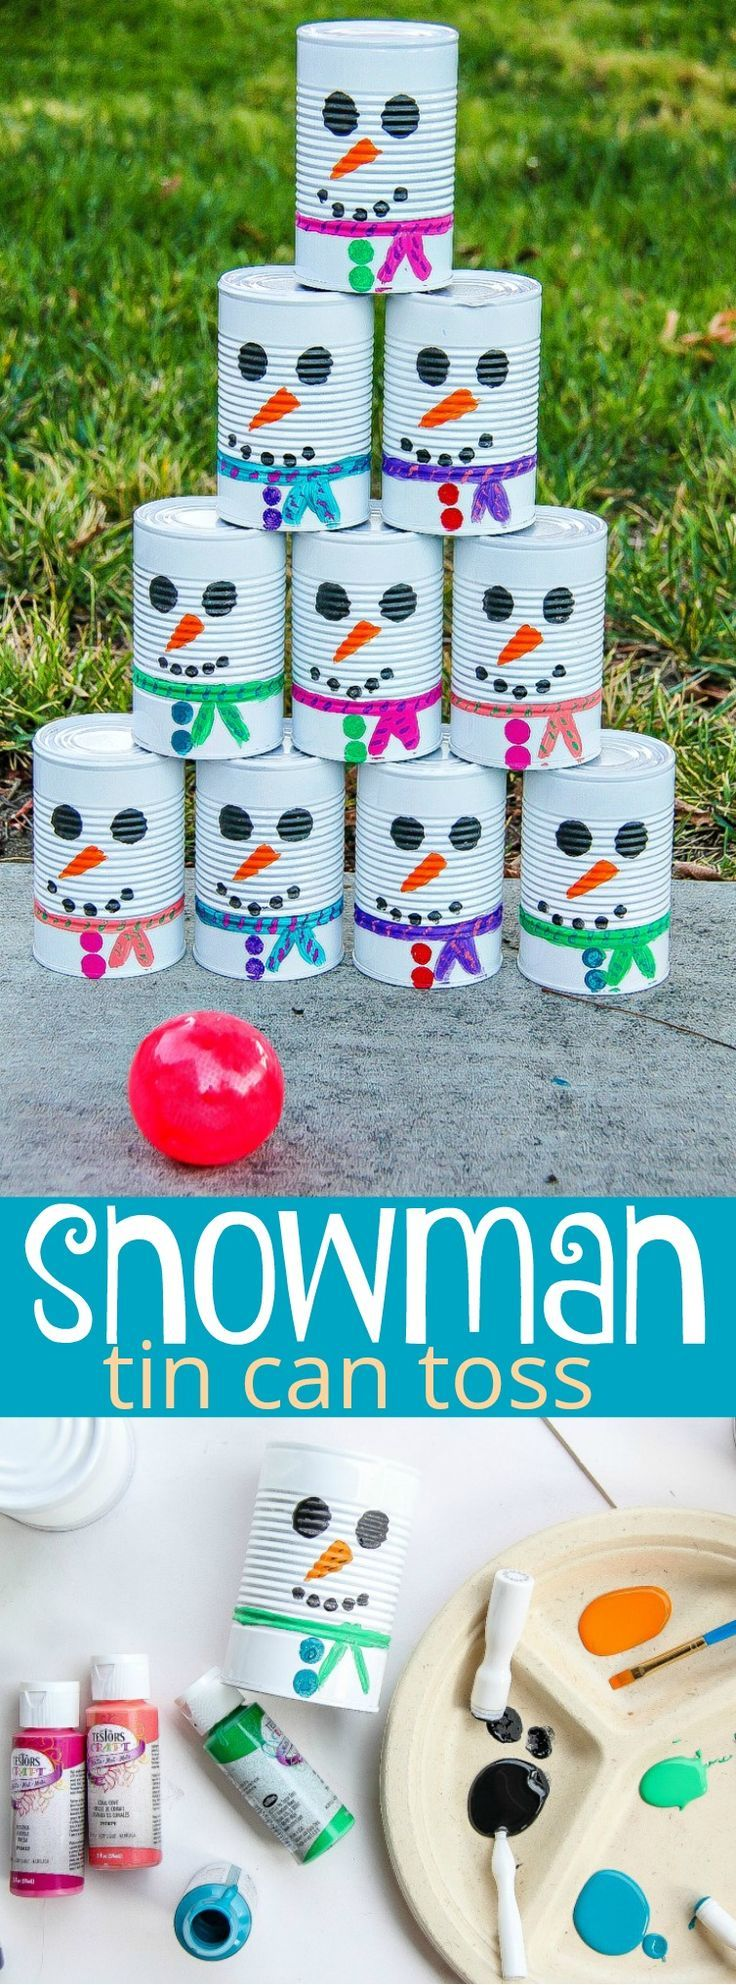 DIY Snowman Tin Can Toss - Fun Winter Activity For Kids #kidsactivities #wintercraft #ad